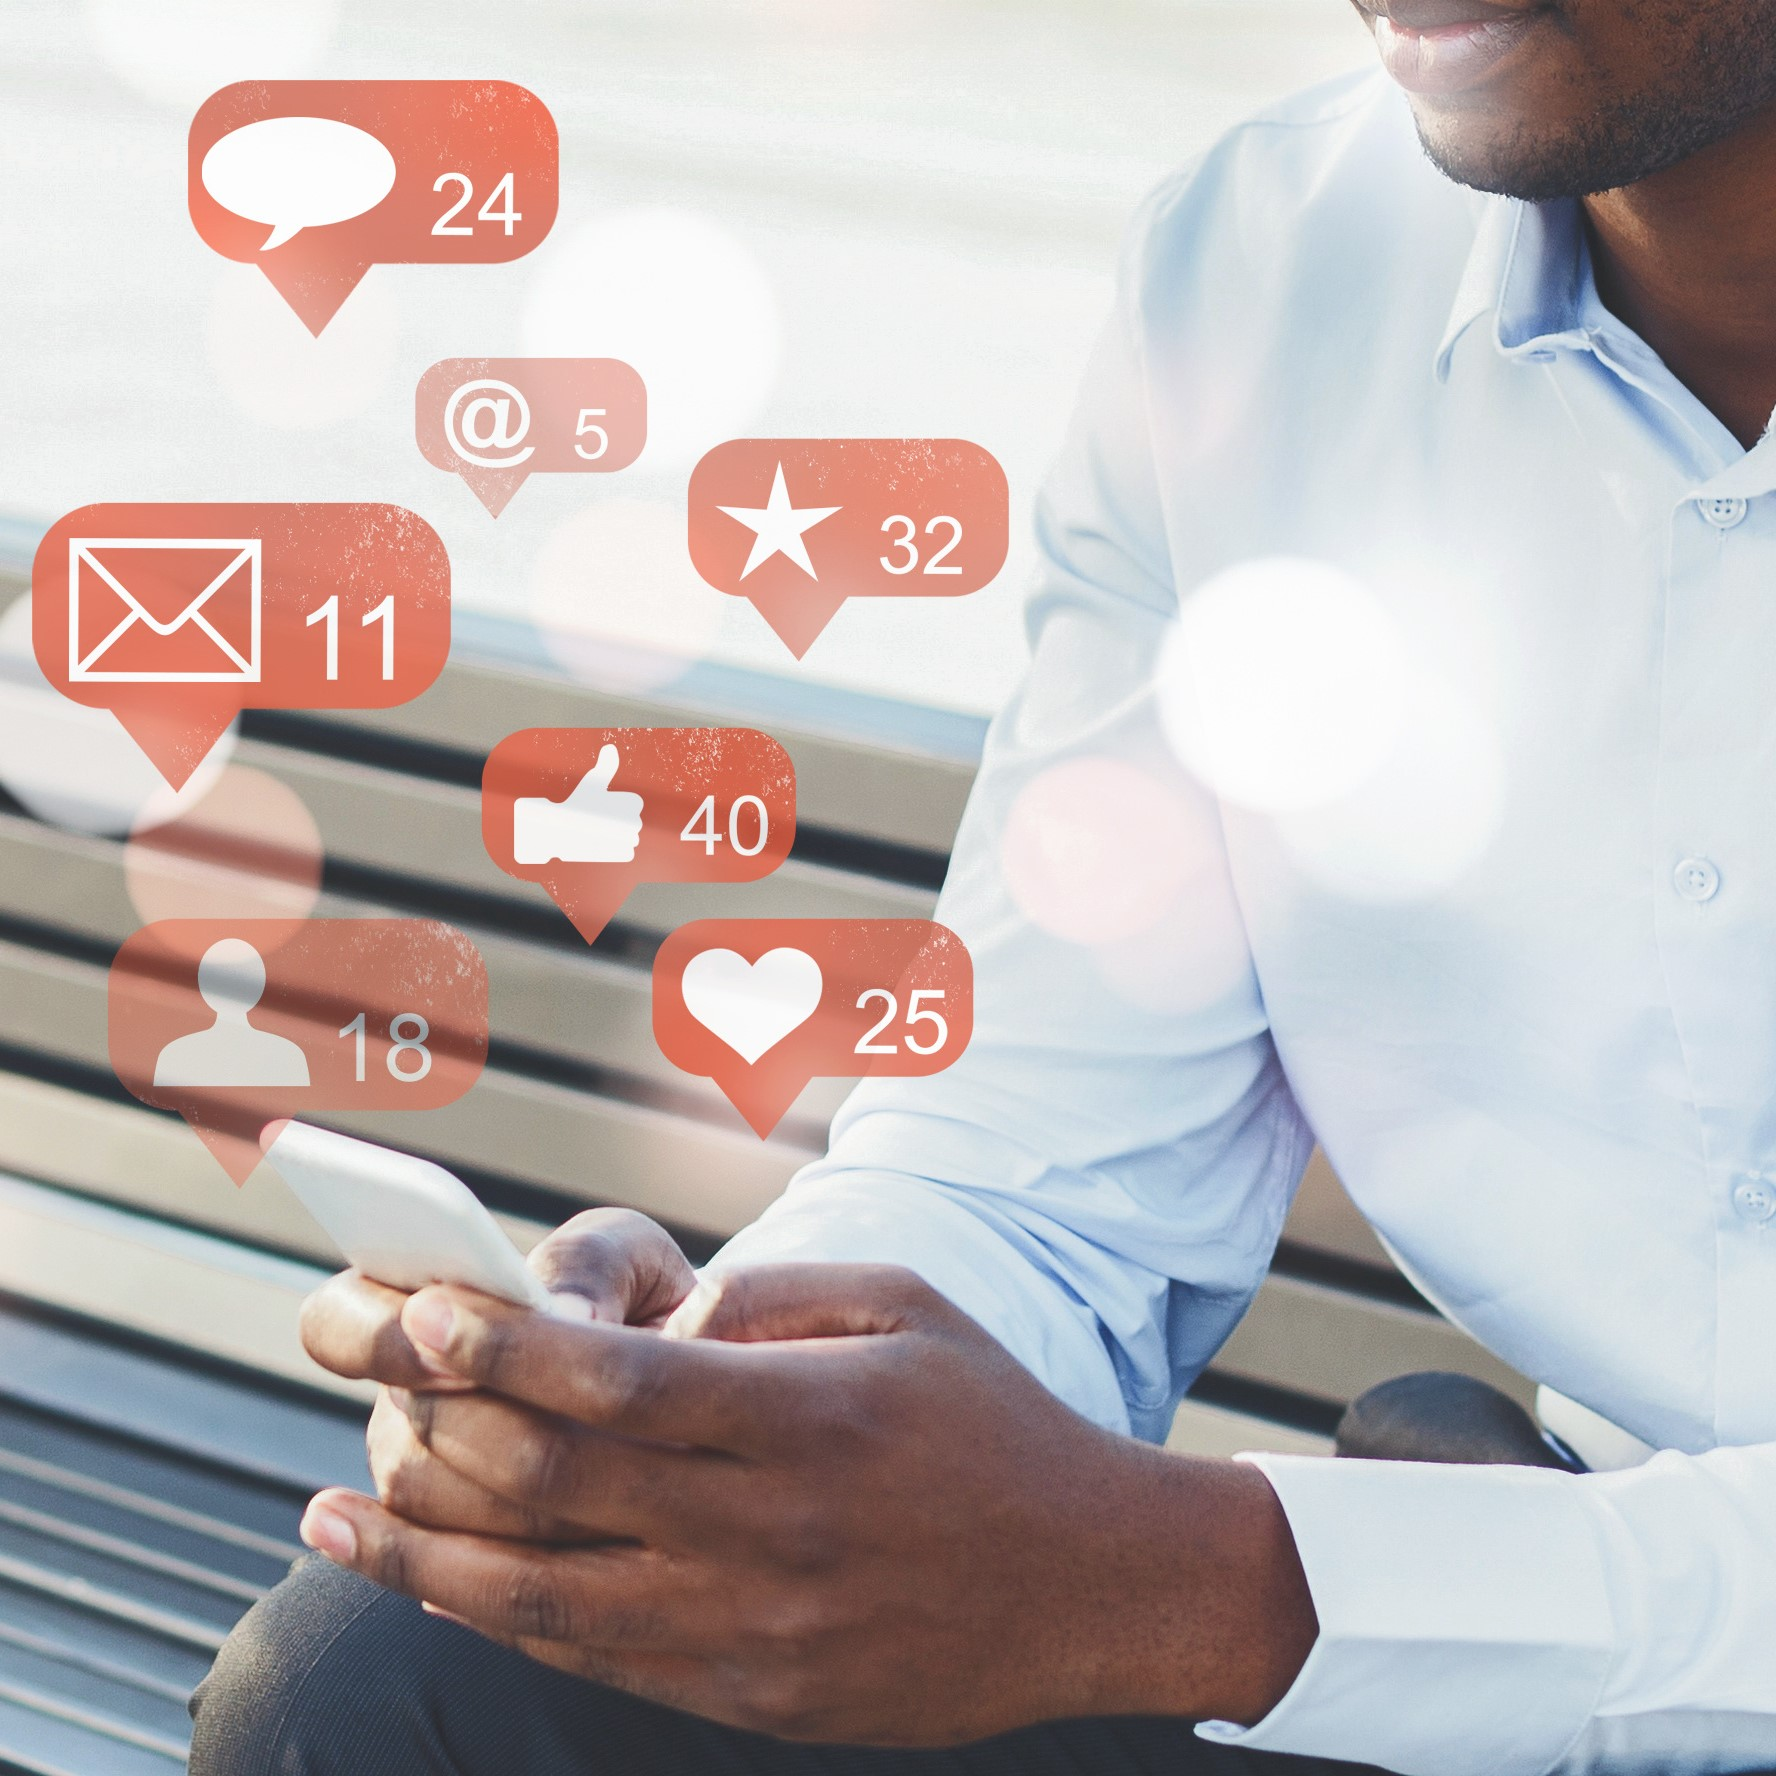 Businessman using social media with notification icons